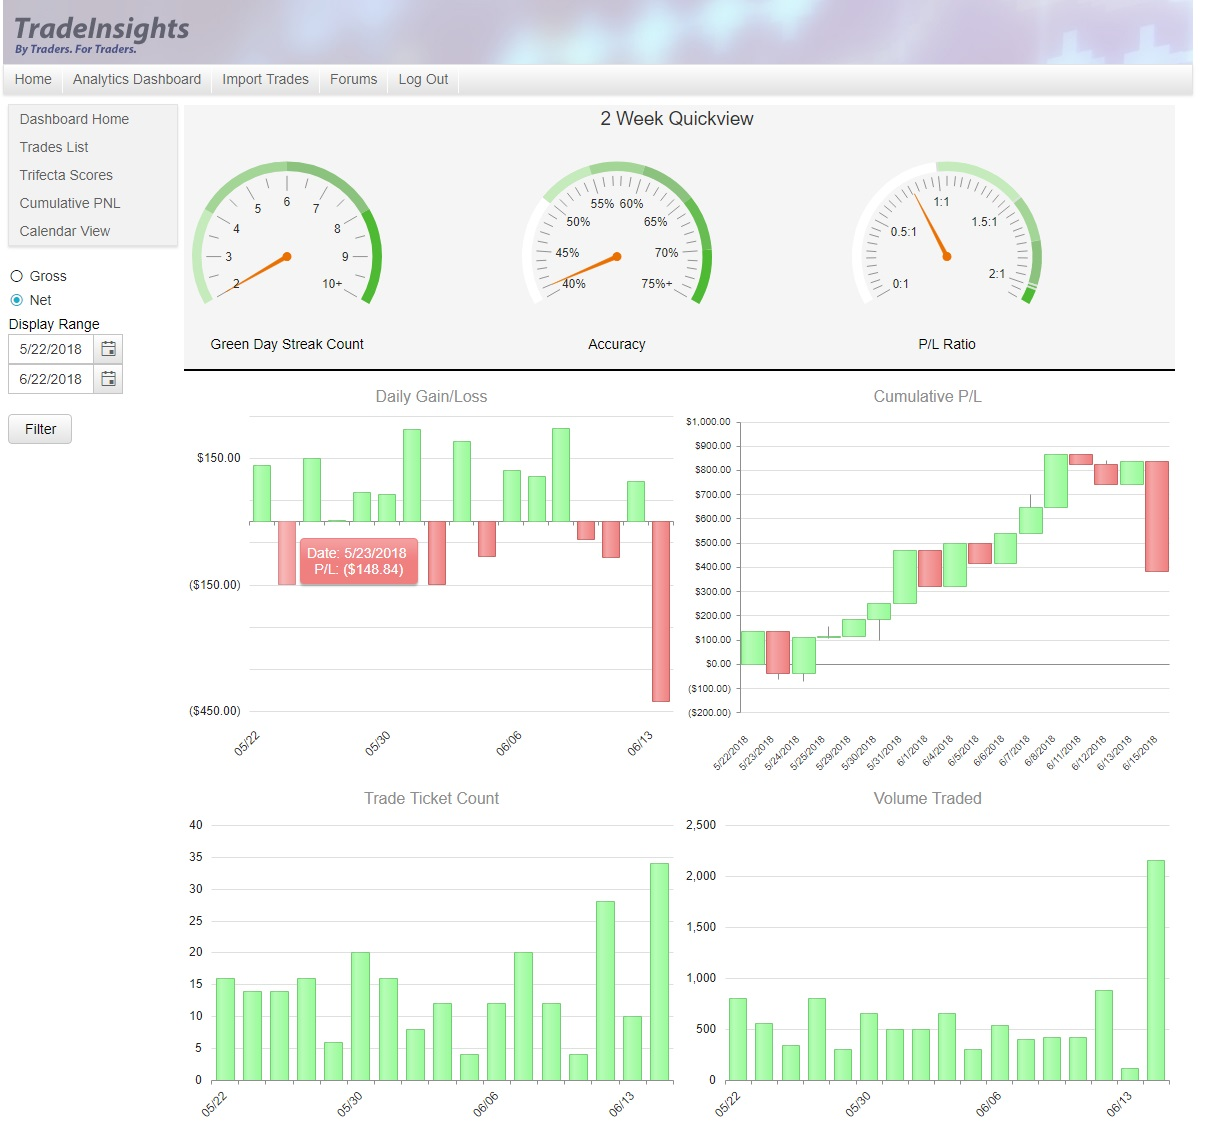 Trading Activity Dashboard